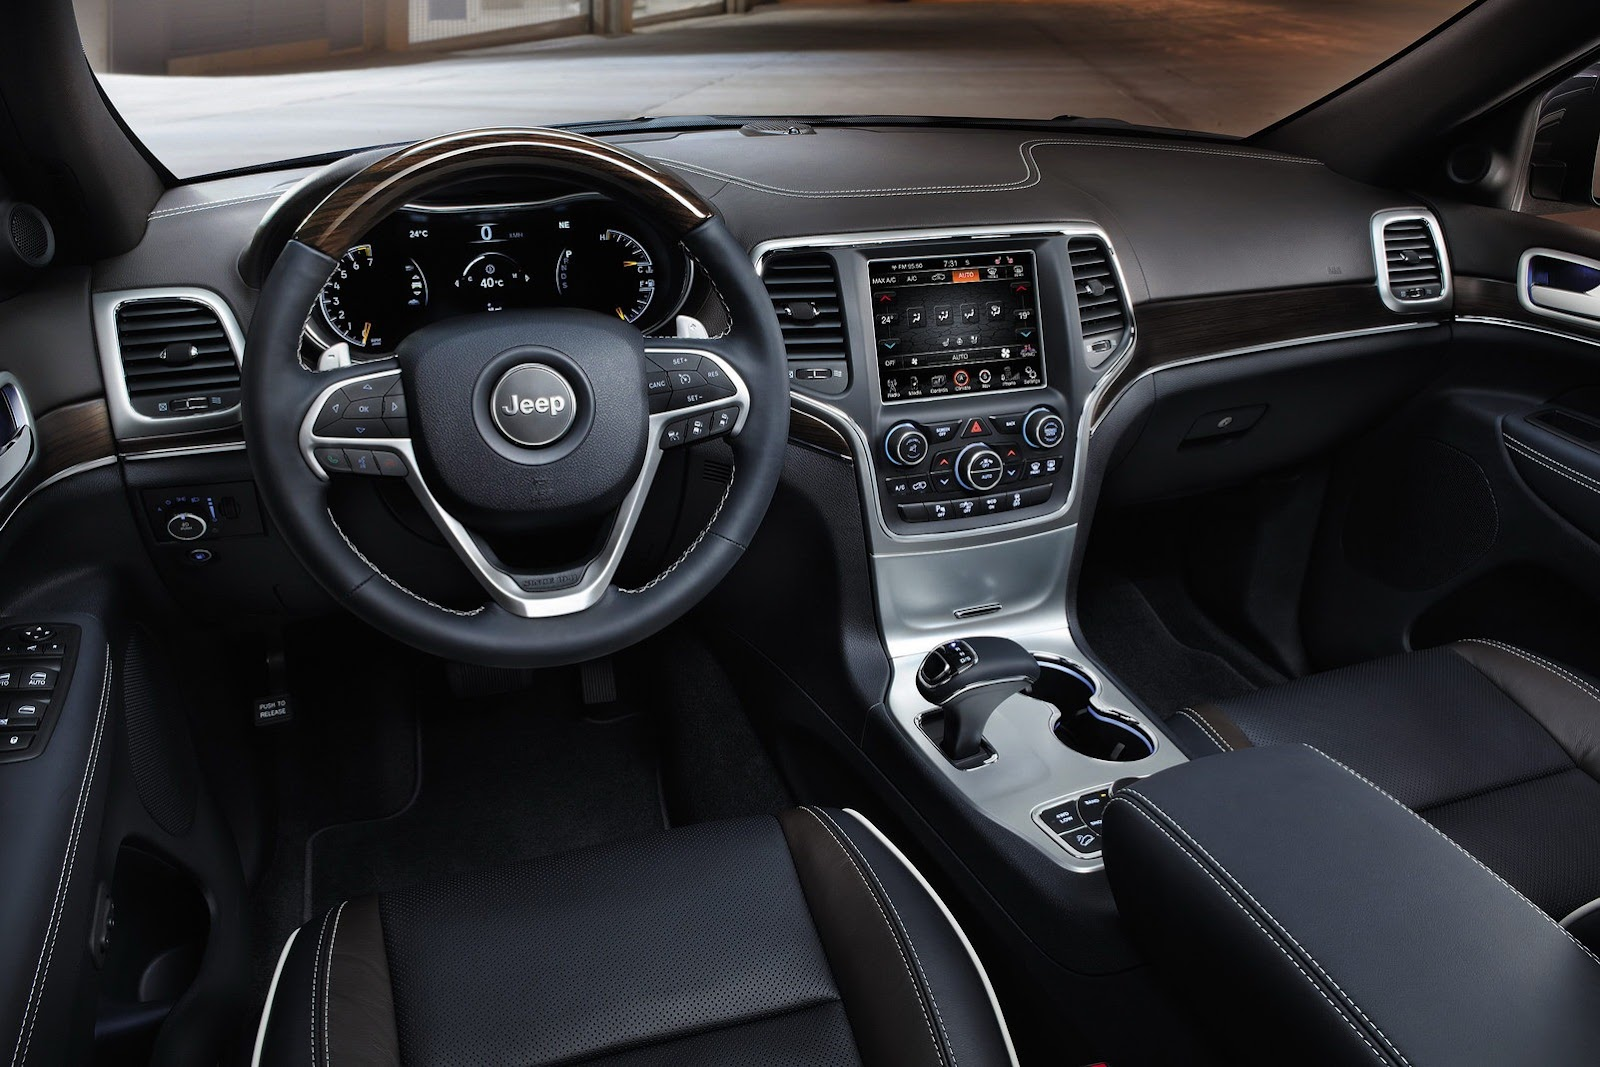 2013-Jeep-Grand-Cherokee-EU5[2].jpg